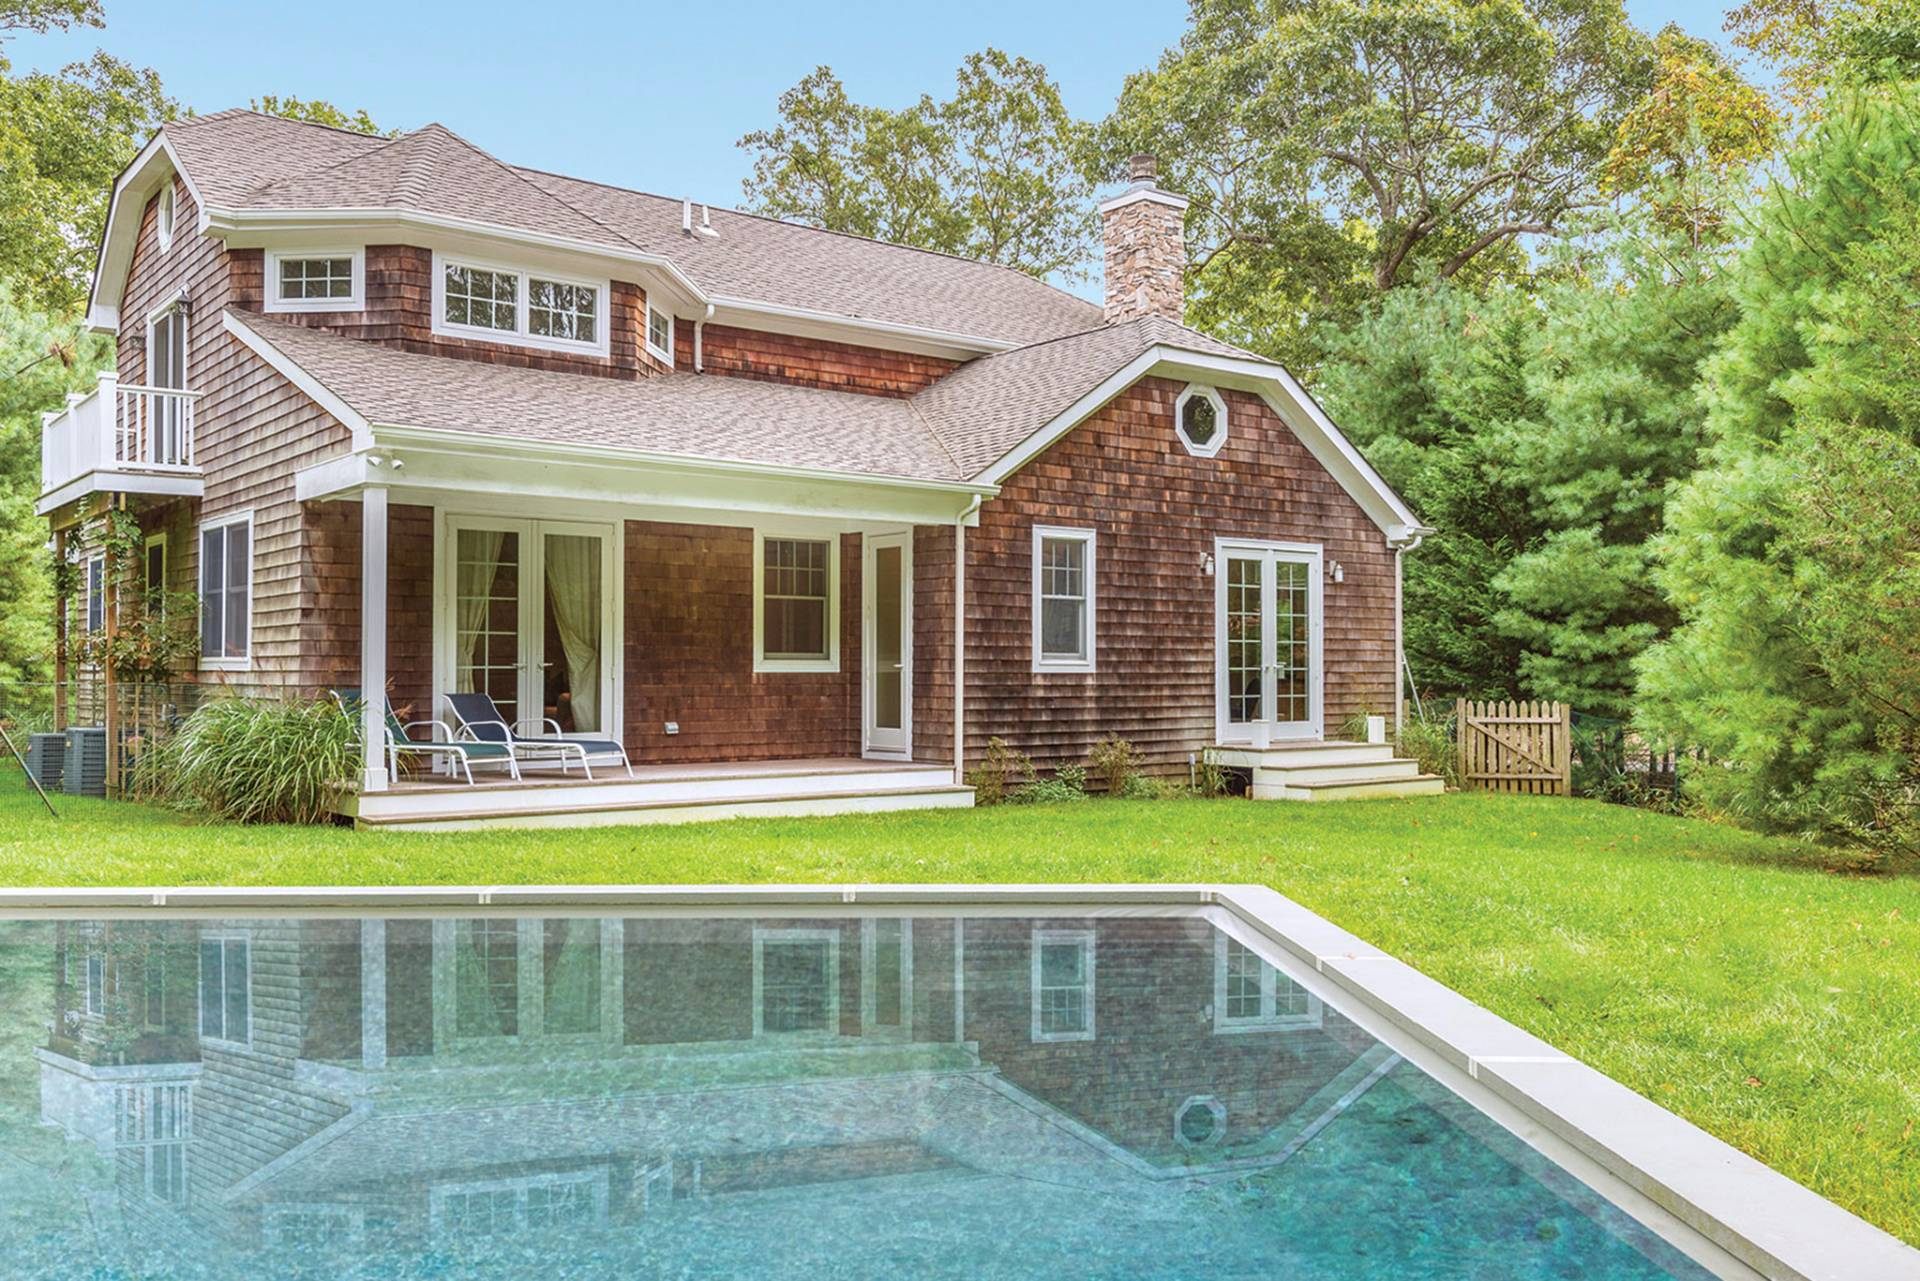 Single Family Home for Sale at Simply Stunning In Beach Community With Marina 10 Bull Pasture Lane, East Hampton, New York